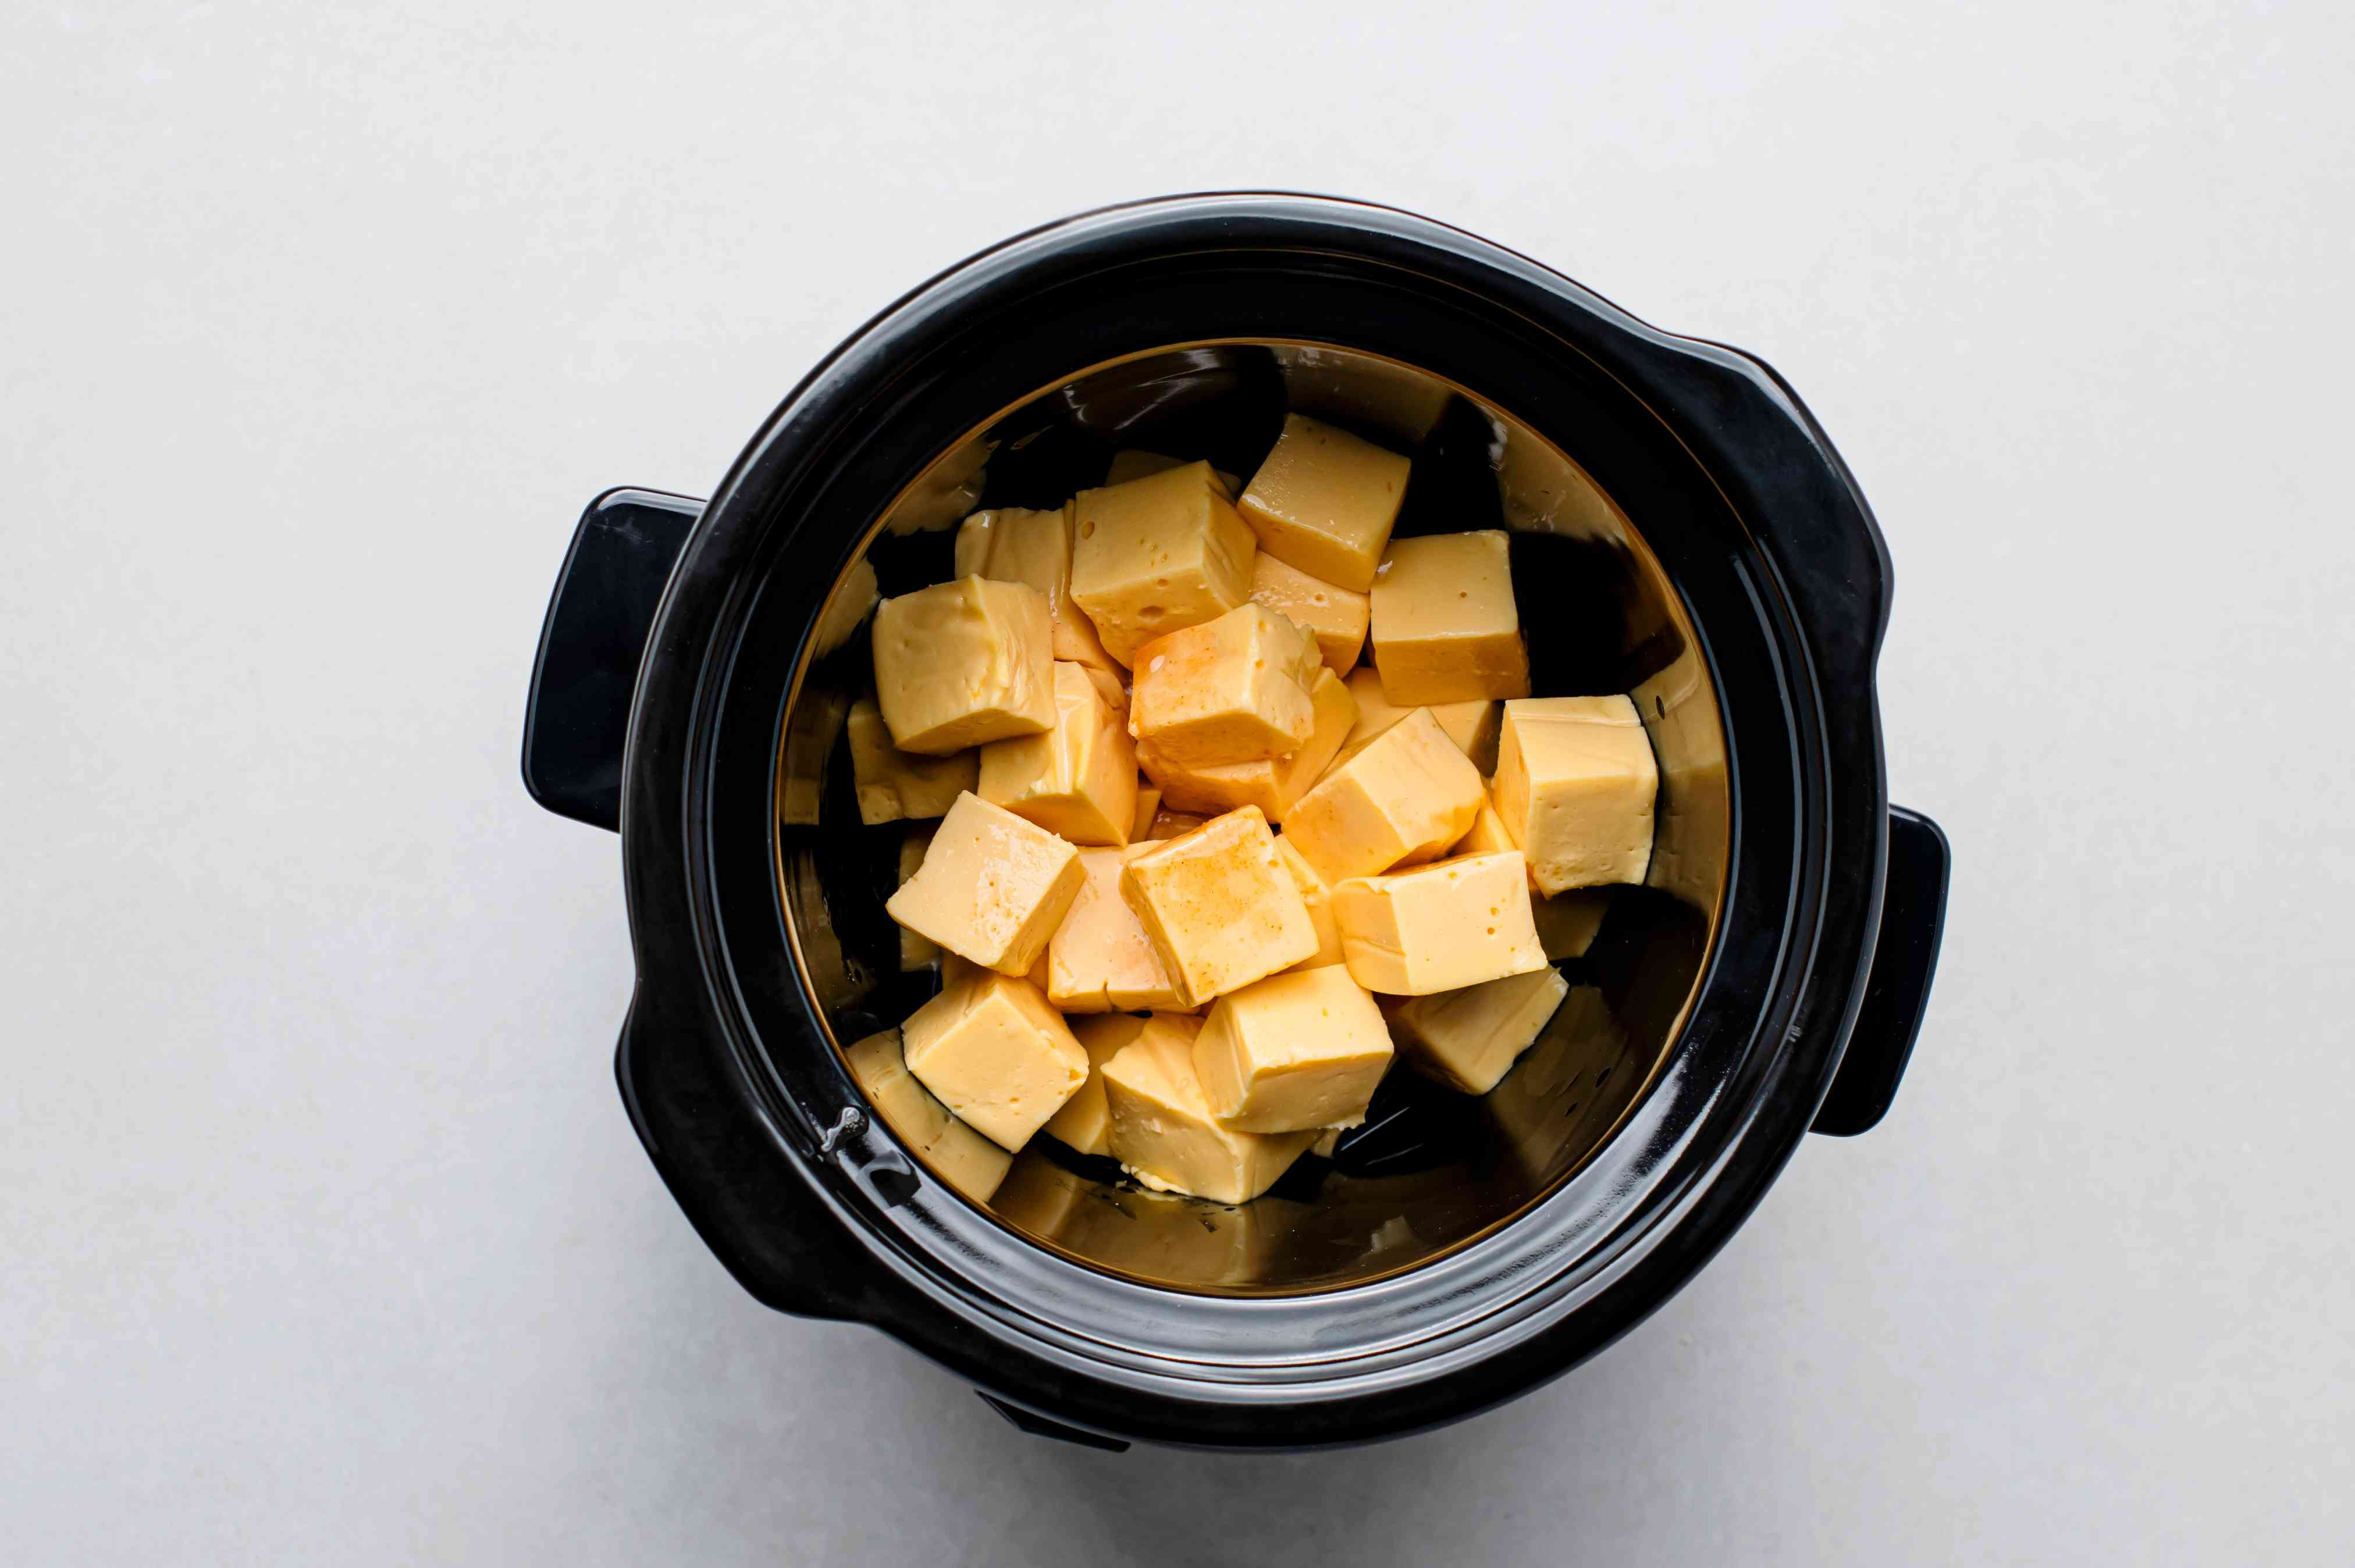 beer, Tabasco sauce, and processed cheese spread in a 1 to 2-quart slow cooker